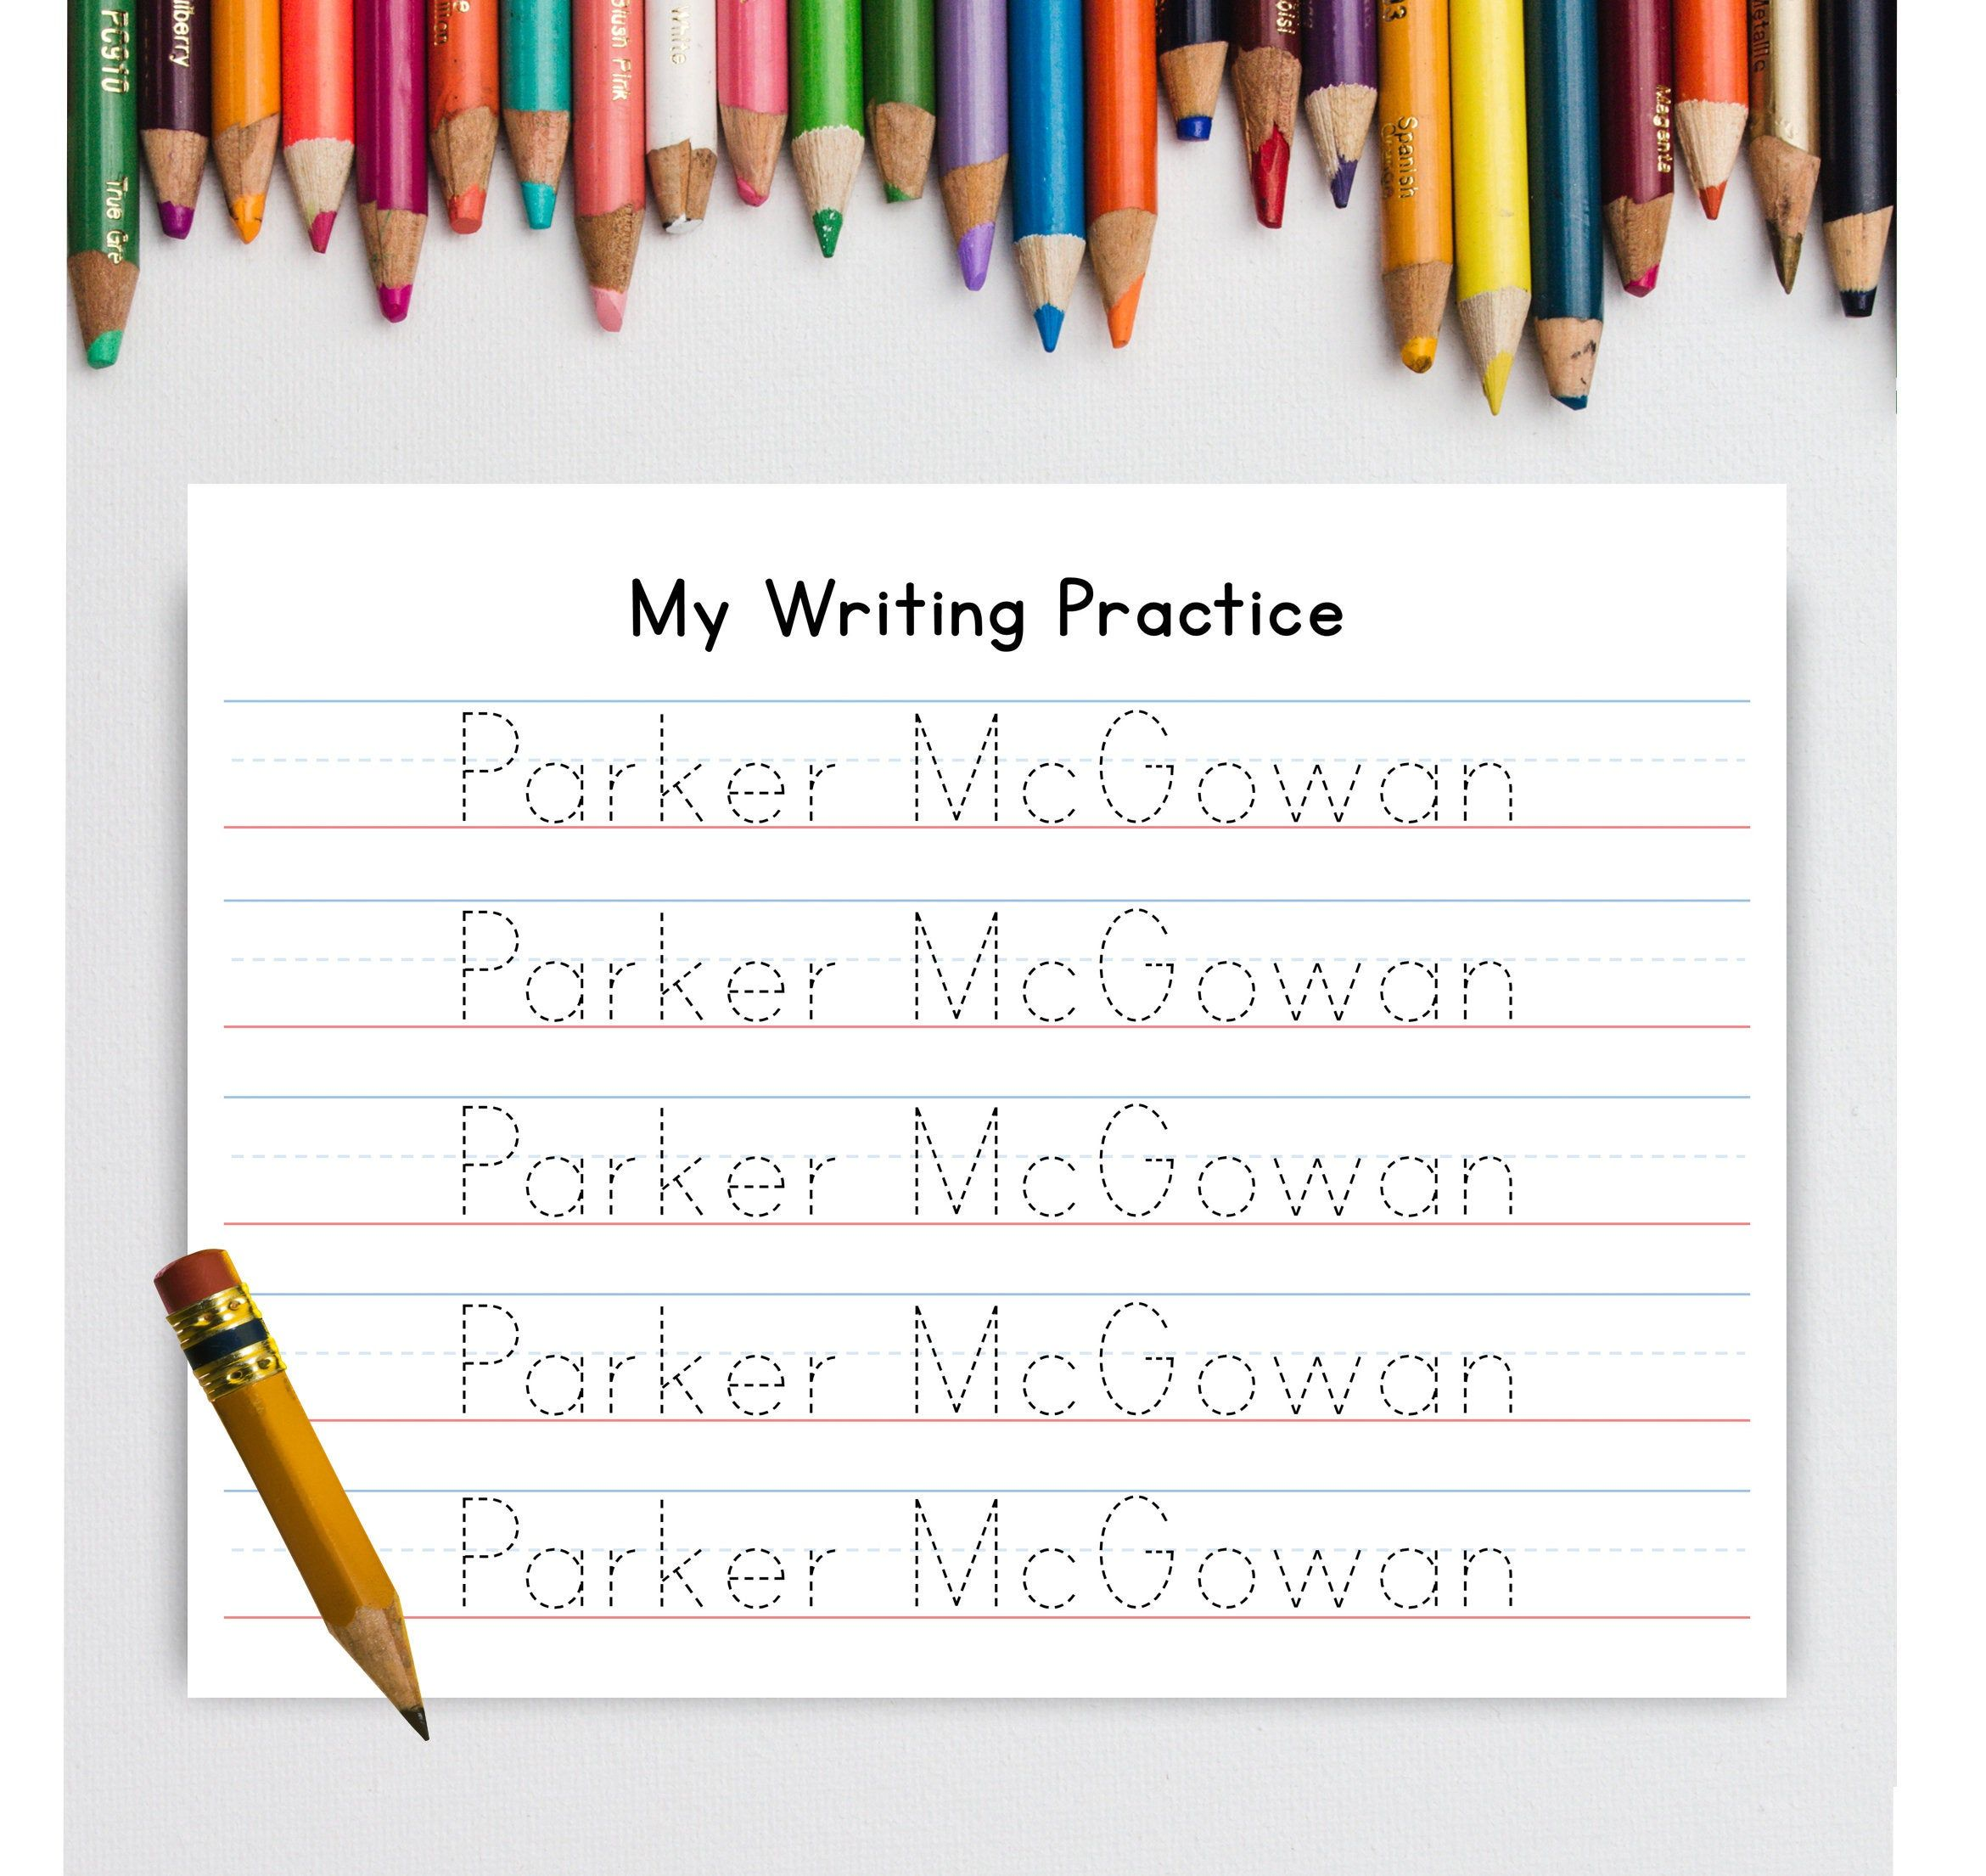 Personalized Writing Practice Worksheet Printable Name Tracing Etsy Writing Practice Worksheets Writing Practice Paper Writing Practice Handwriting name practice worksheets